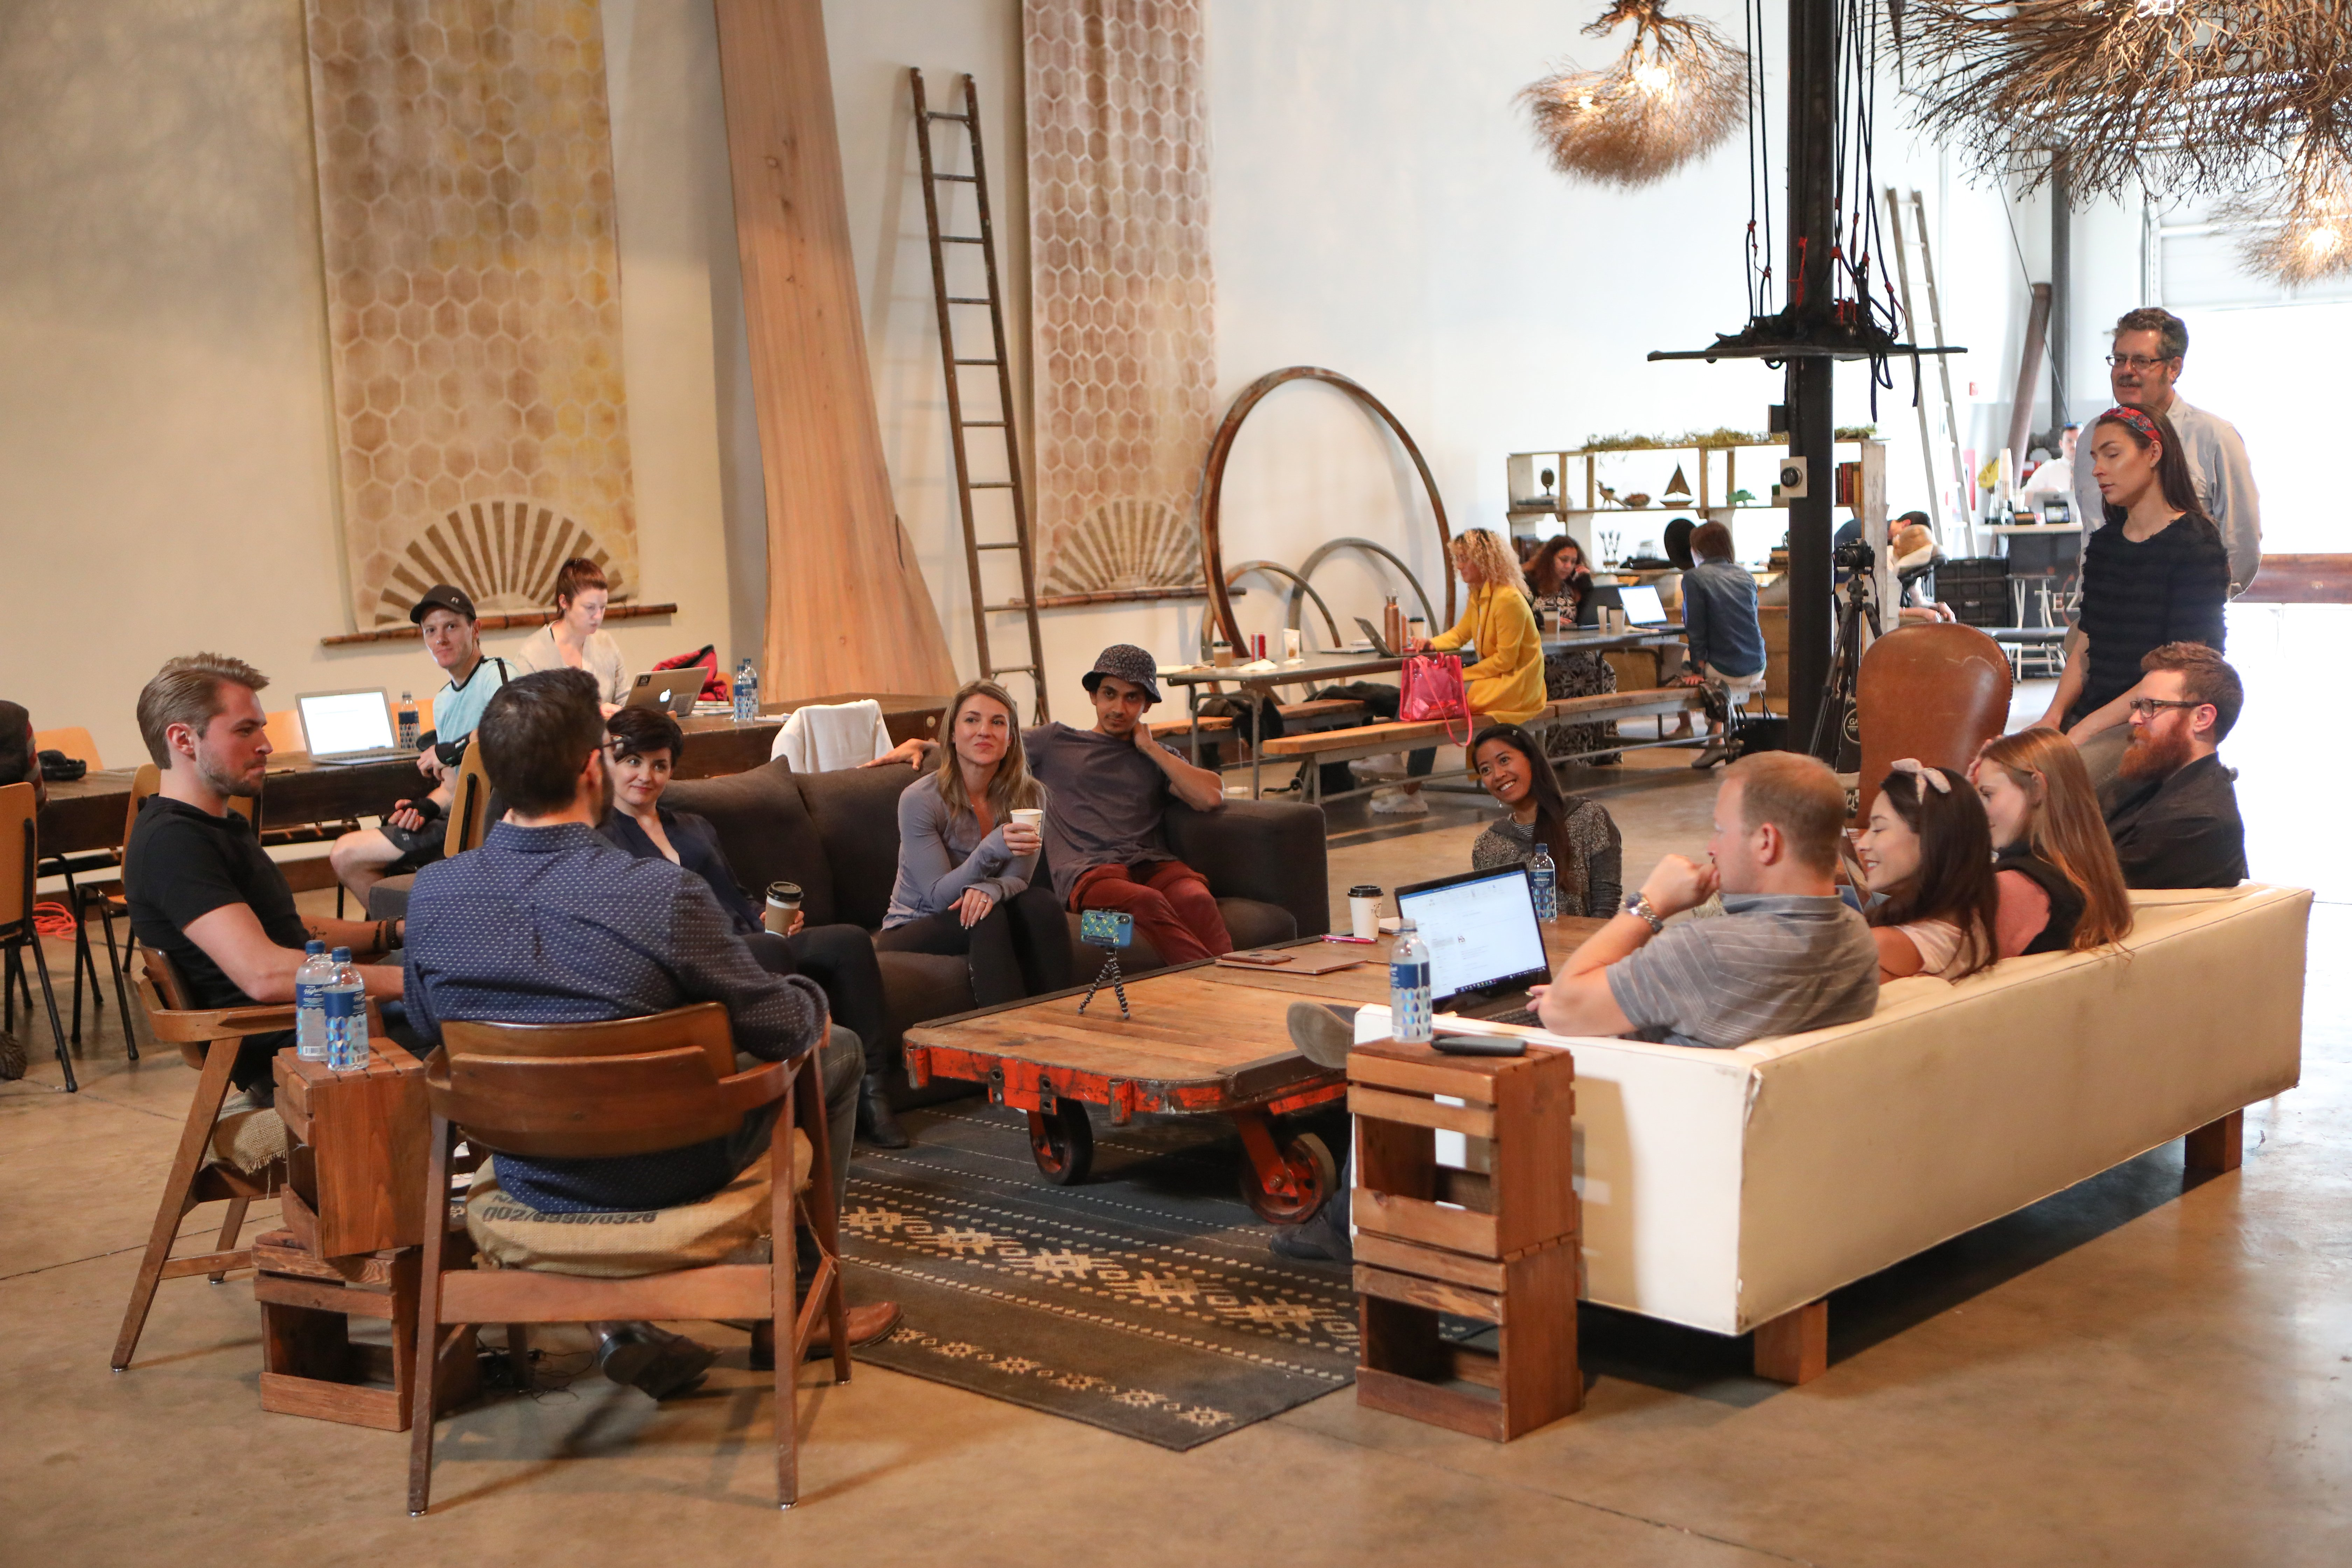 The Cowork Experience